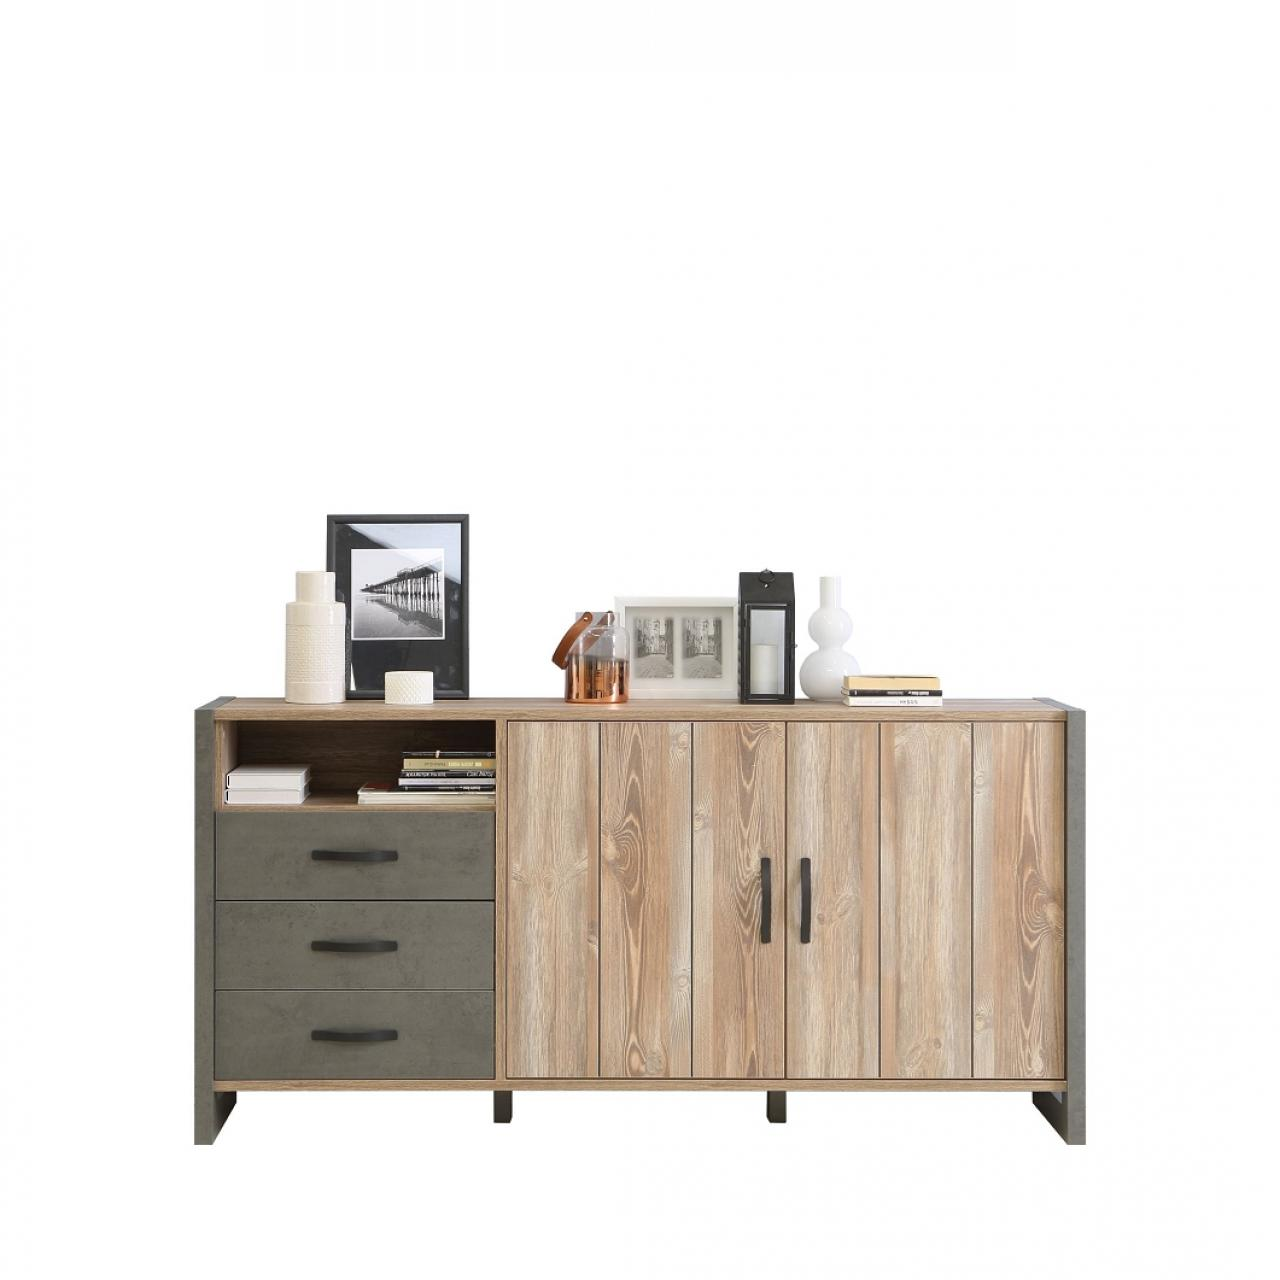 Sideboard Note - Beton/Picea Kiefer